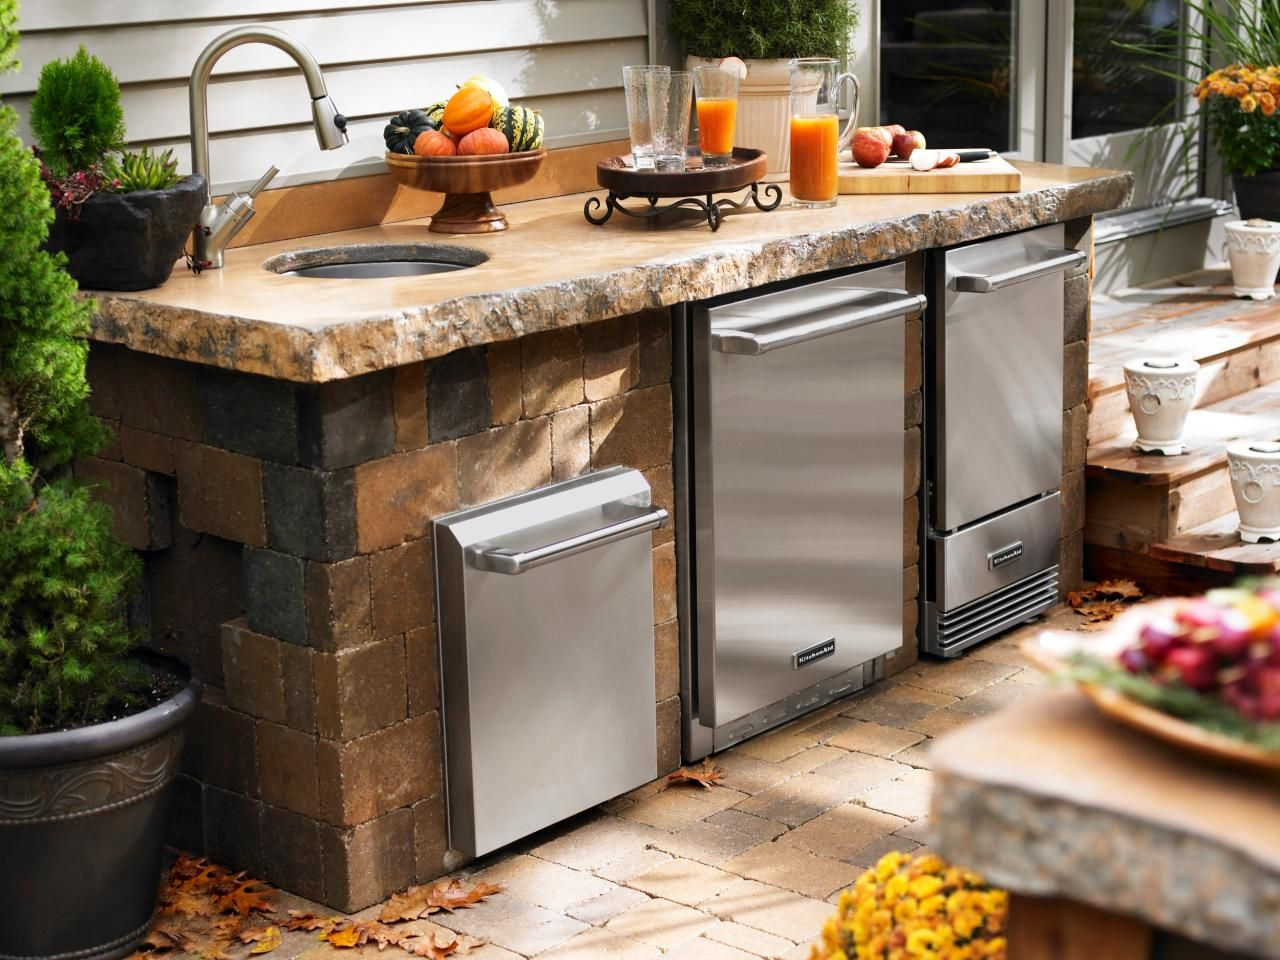 Outdoor kitchen ideas on a budget pictures tips ideas for Kitchen ideas on a budget